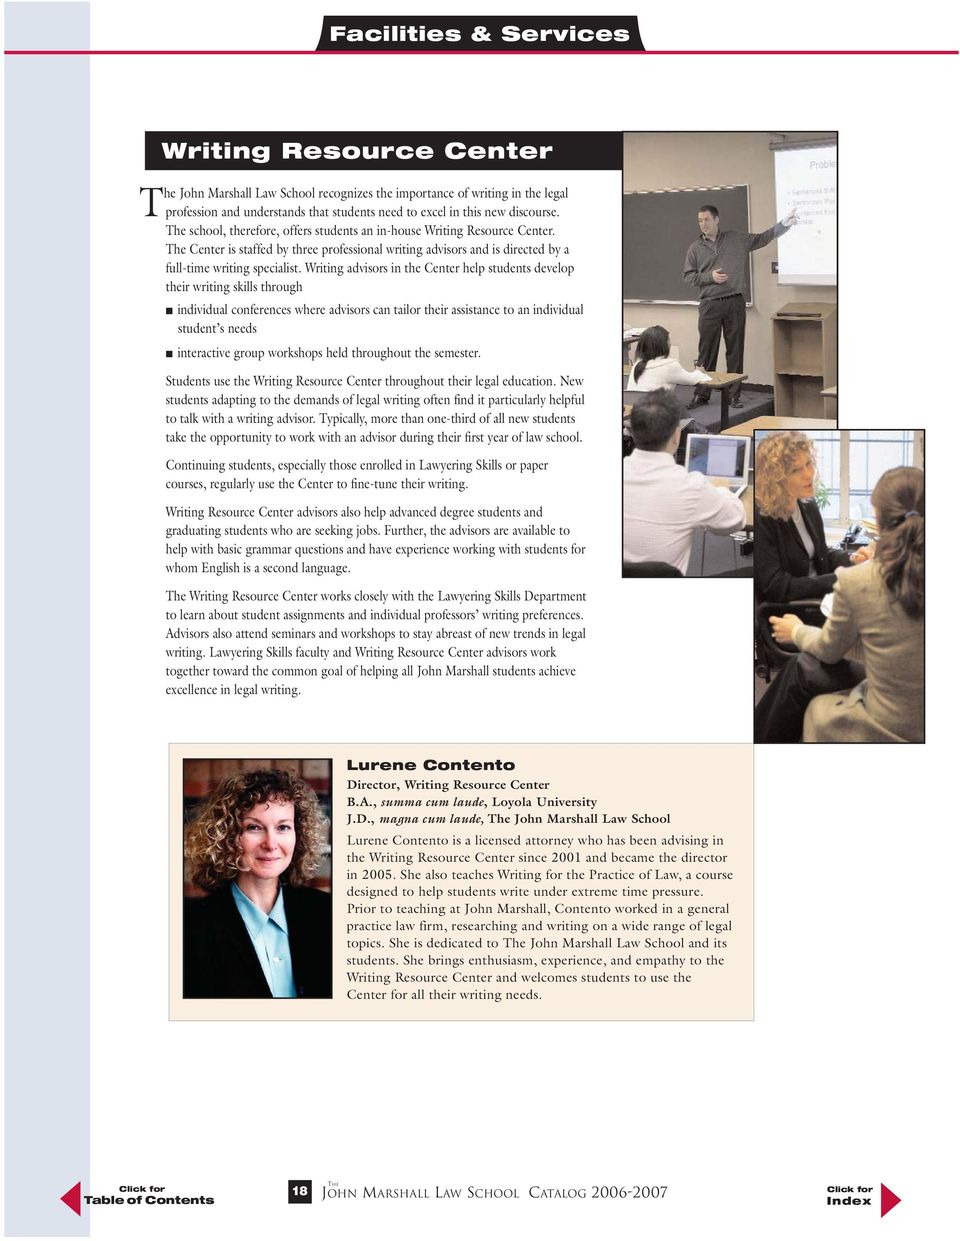 Writing advisors in the Center help students develop their writing skills through individual conferences where advisors can tailor their assistance to an individual student s needs interactive group